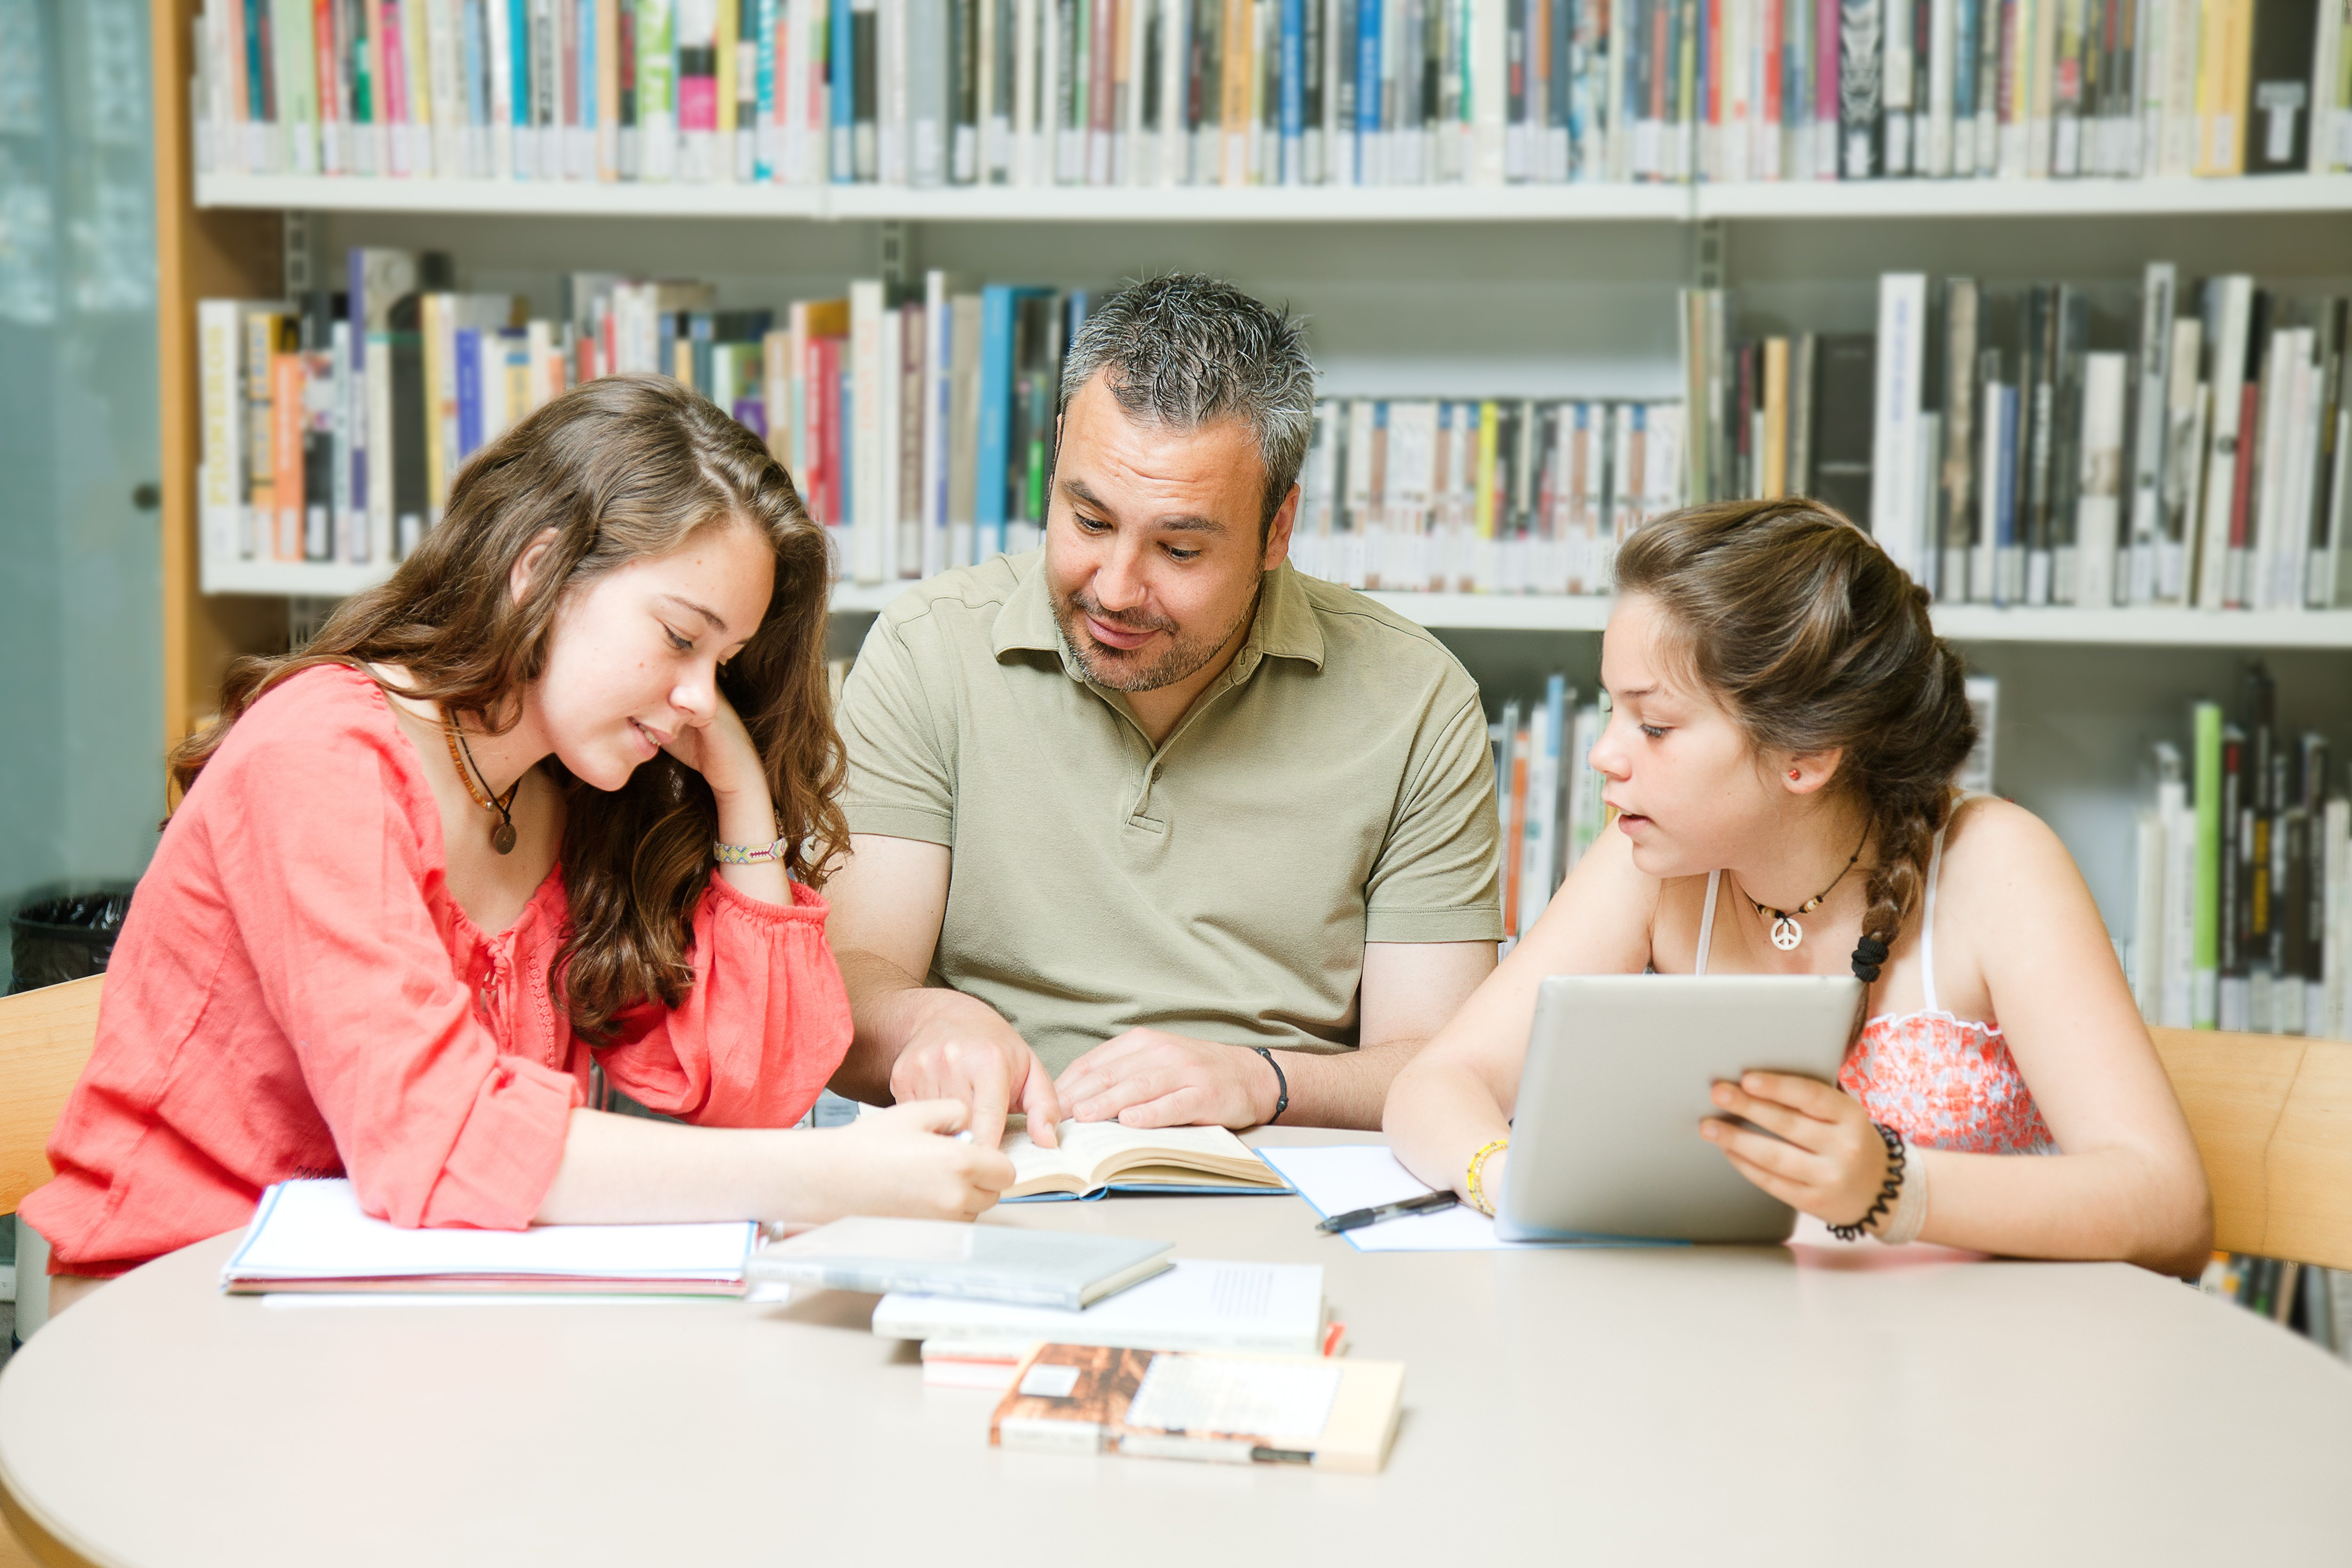 Dad Helping daughters with homework, thinking about saving for retirement and college